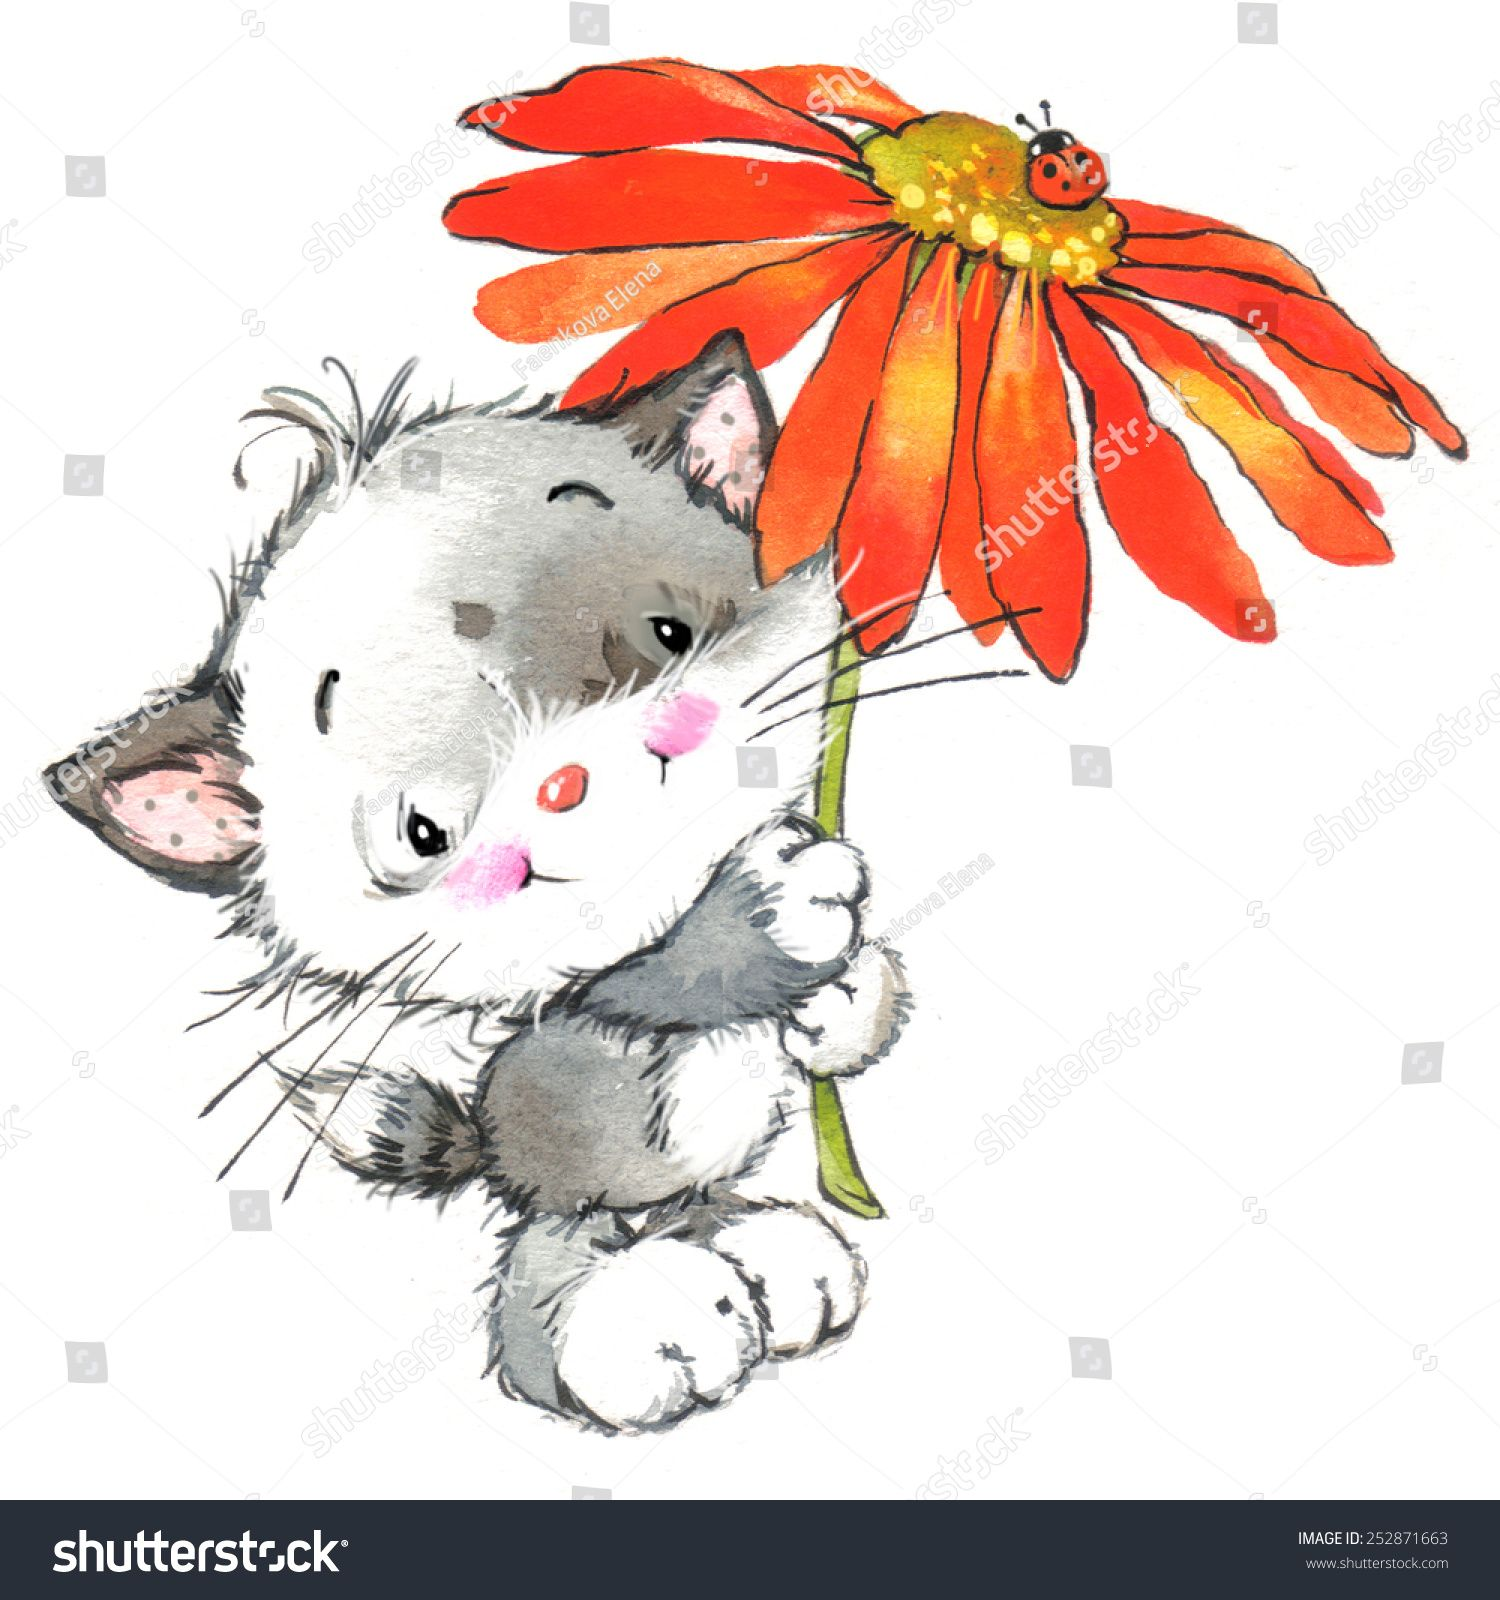 Funny Kitten And Flower Decor For Holiday Greetings Card And Kids Background Watercolor Illustration Kittens Funny Kids Background Watercolor Illustration